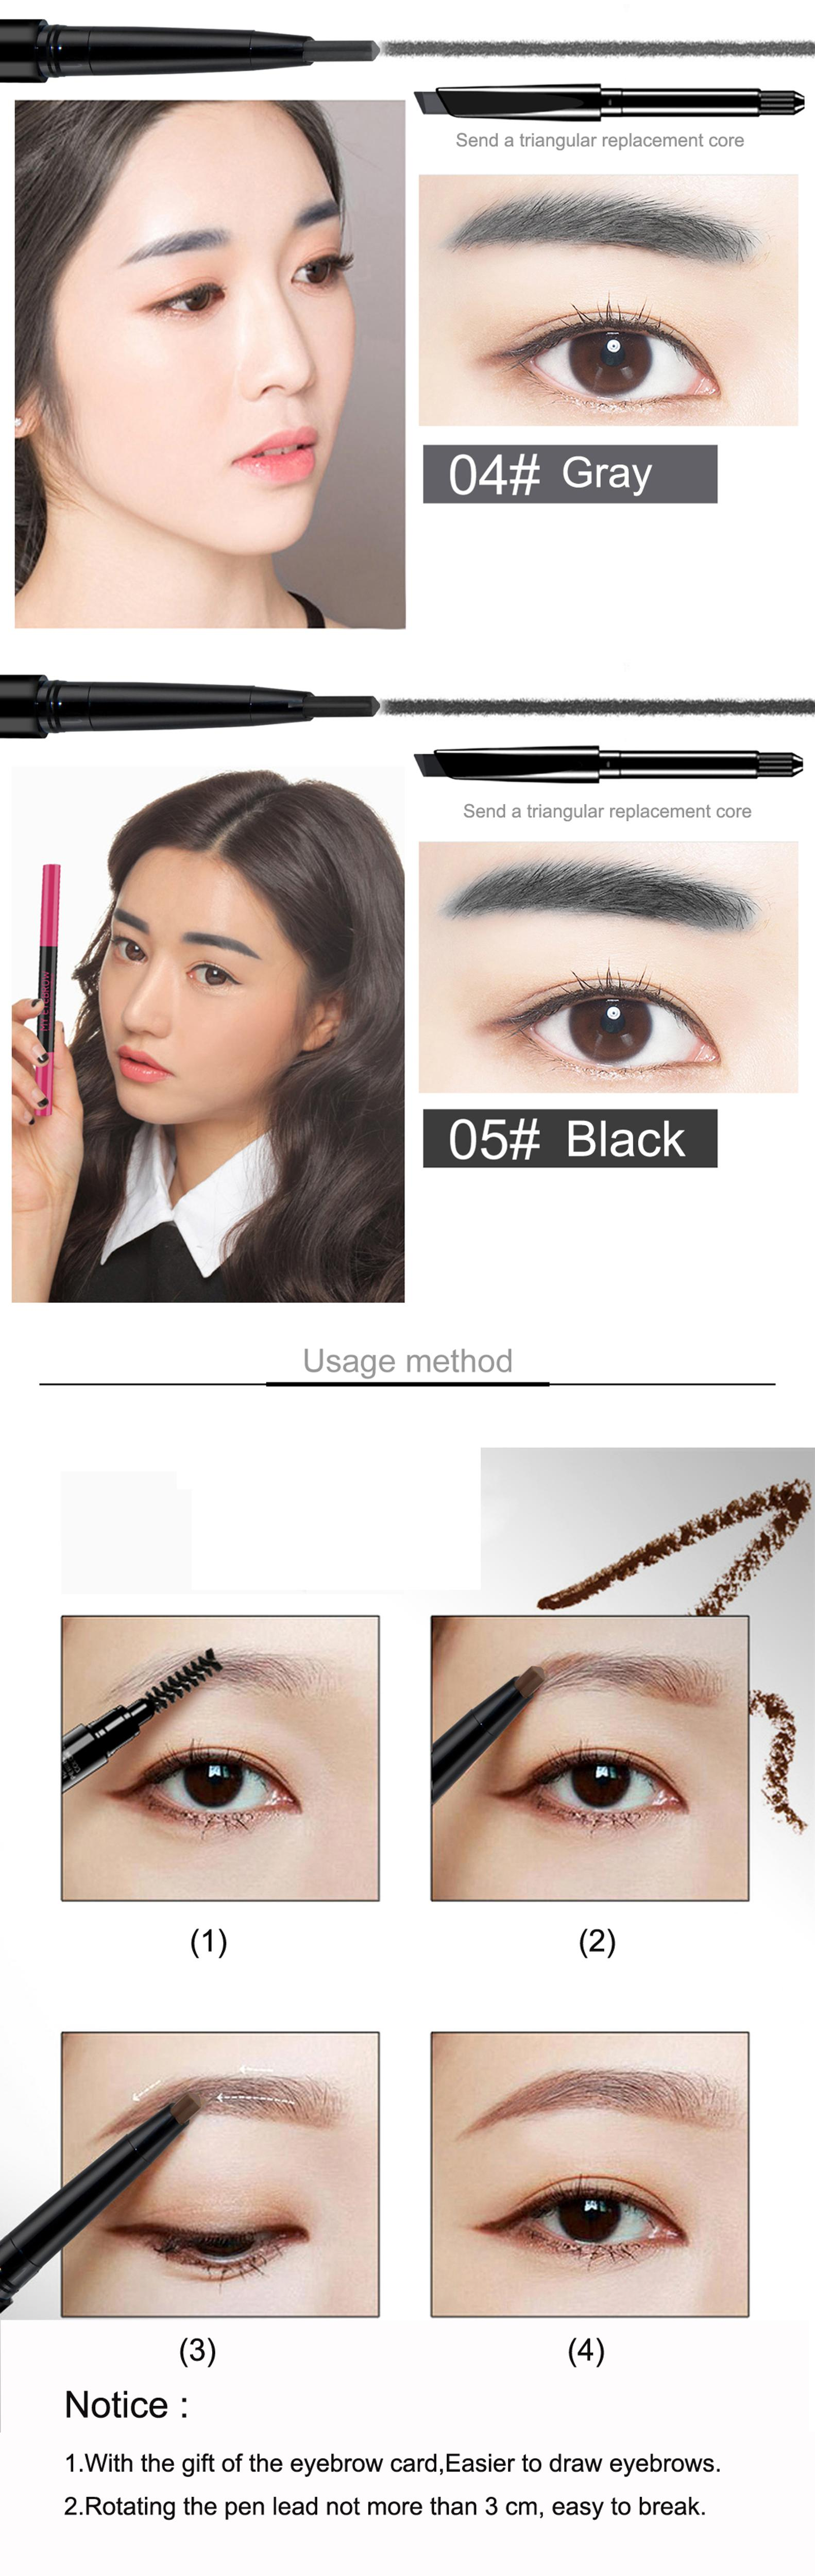 Novo 5 Colors Eyebrow Pencil Drawing Pen Eye Brow Makeup Tool 3pc